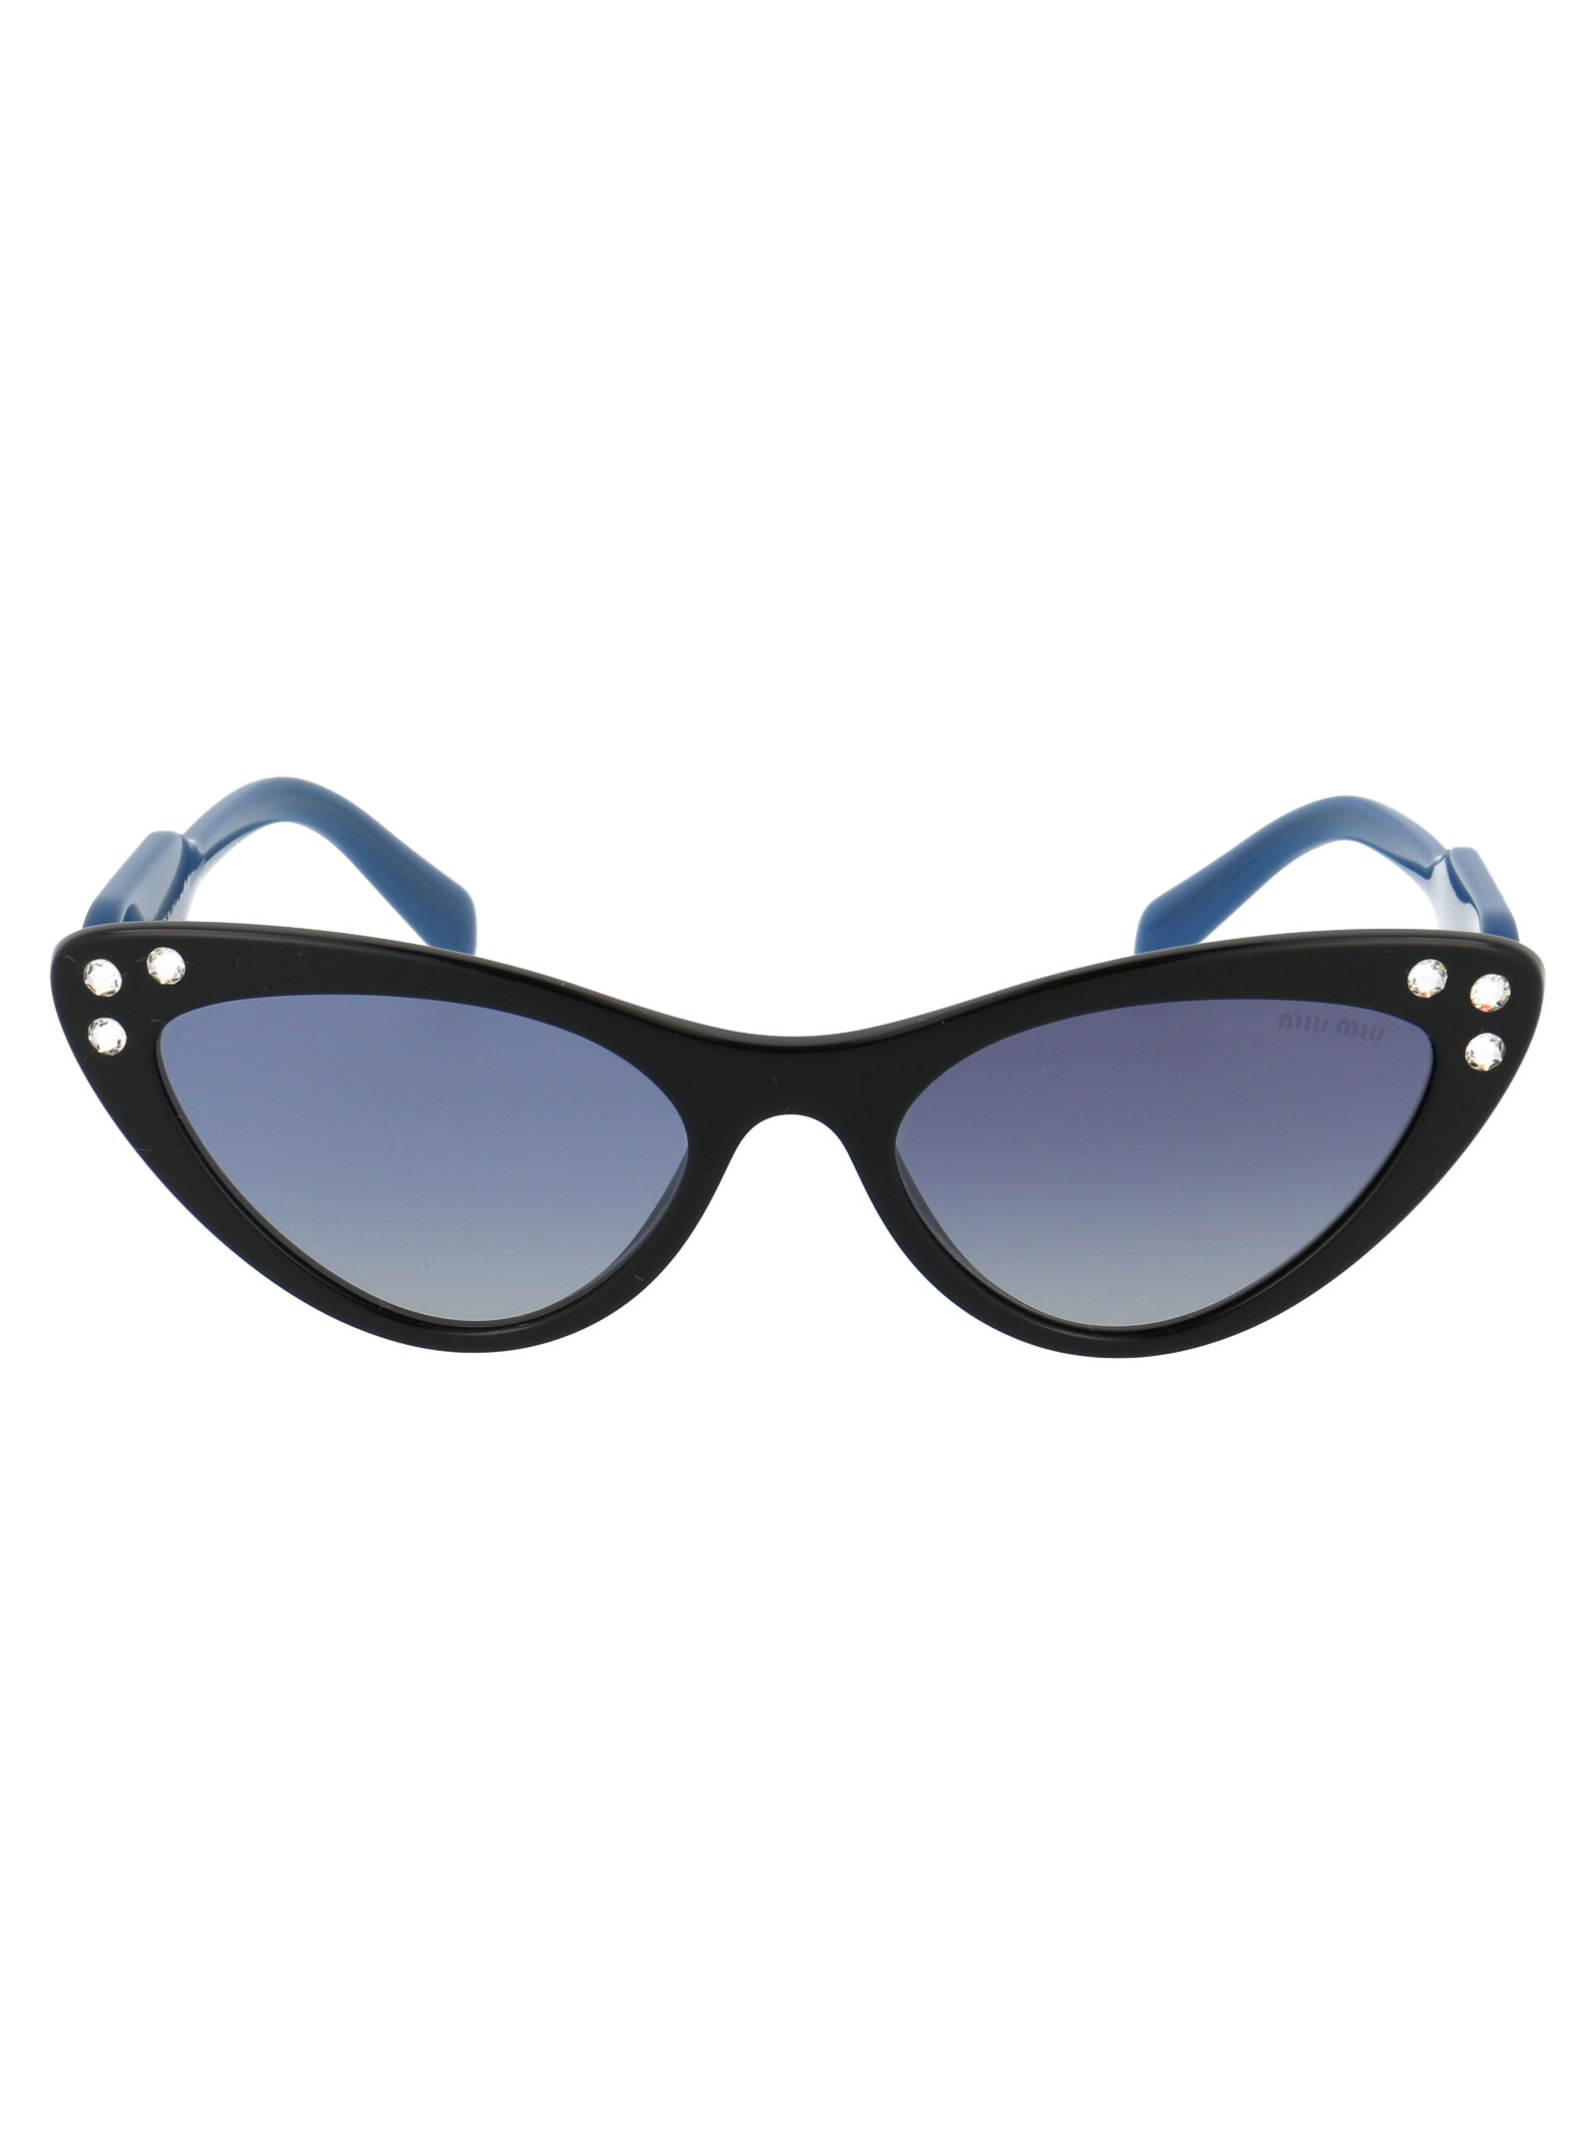 0mu 05ts Sunglasses